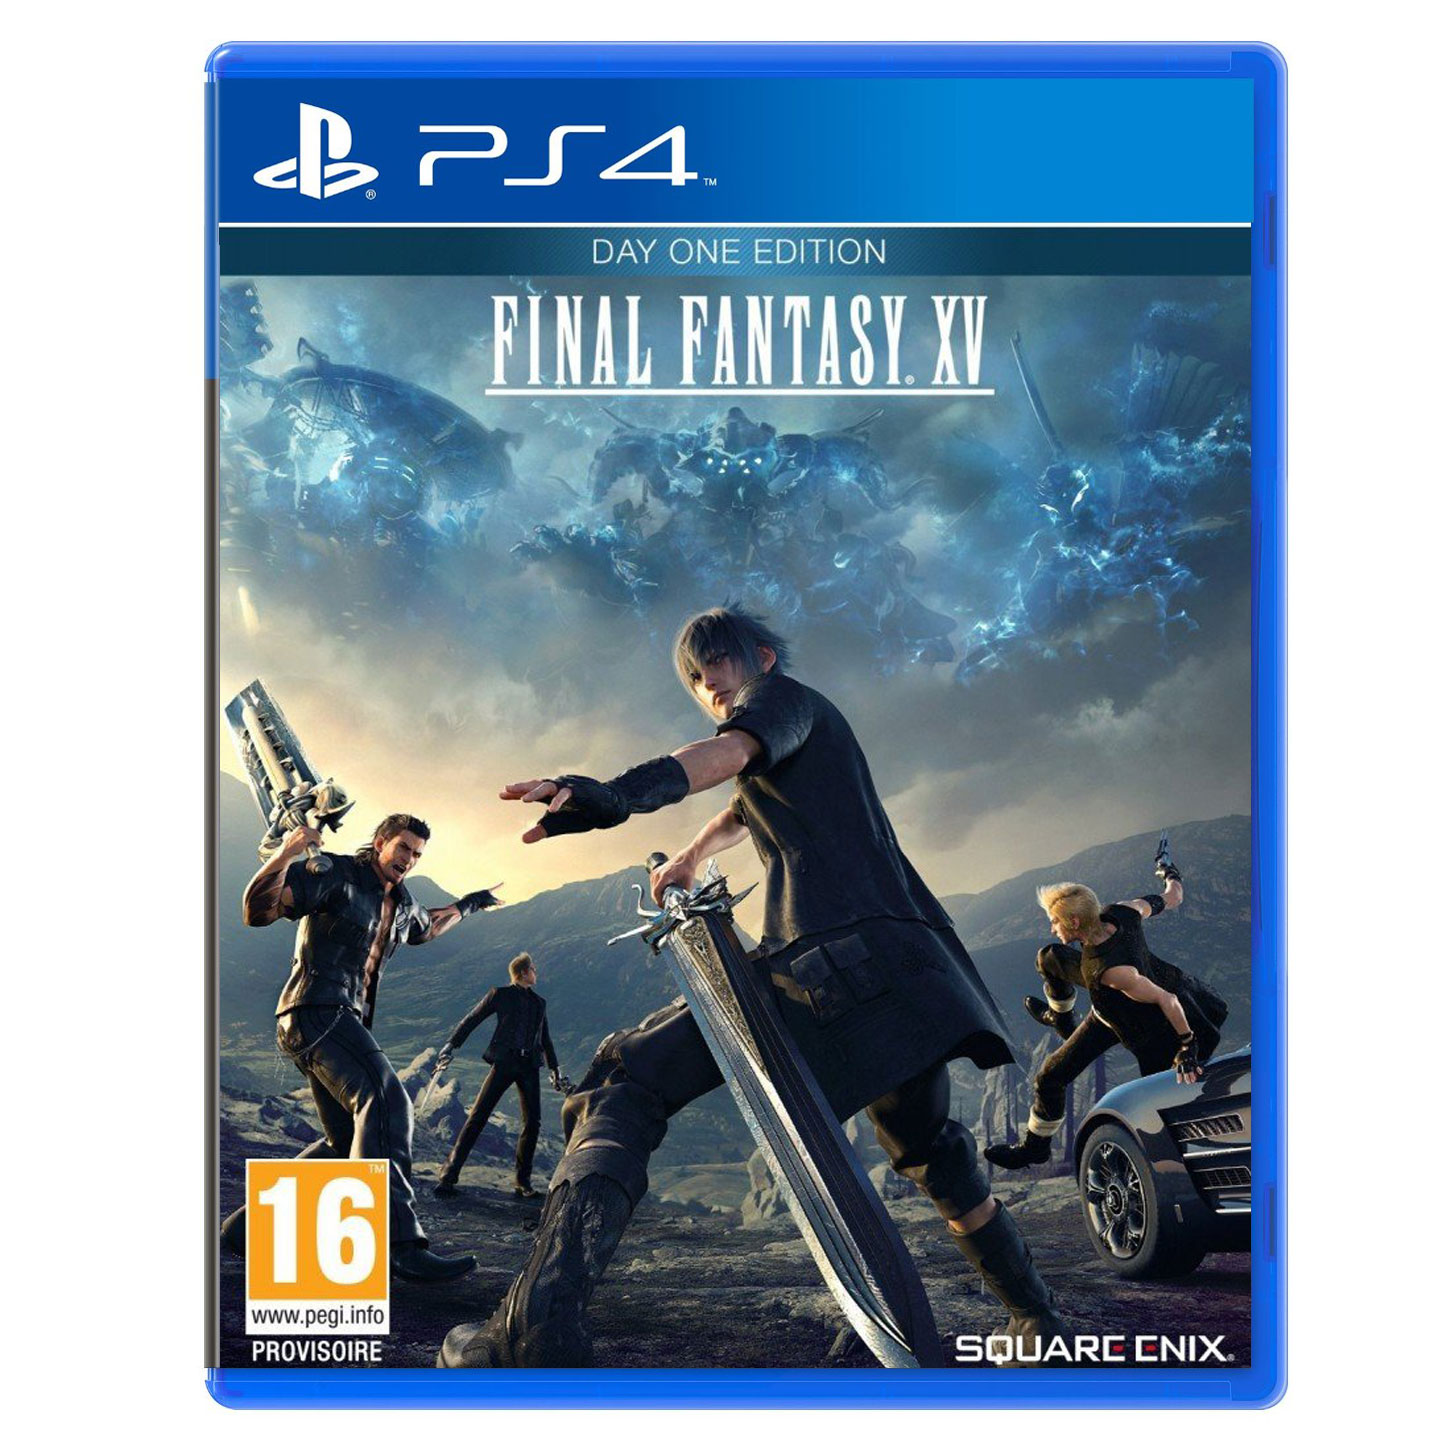 Jeux PS4 Final Fantasy XV - Day One Edition (PS4) Final Fantasy XV - Day One Edition (PS4)